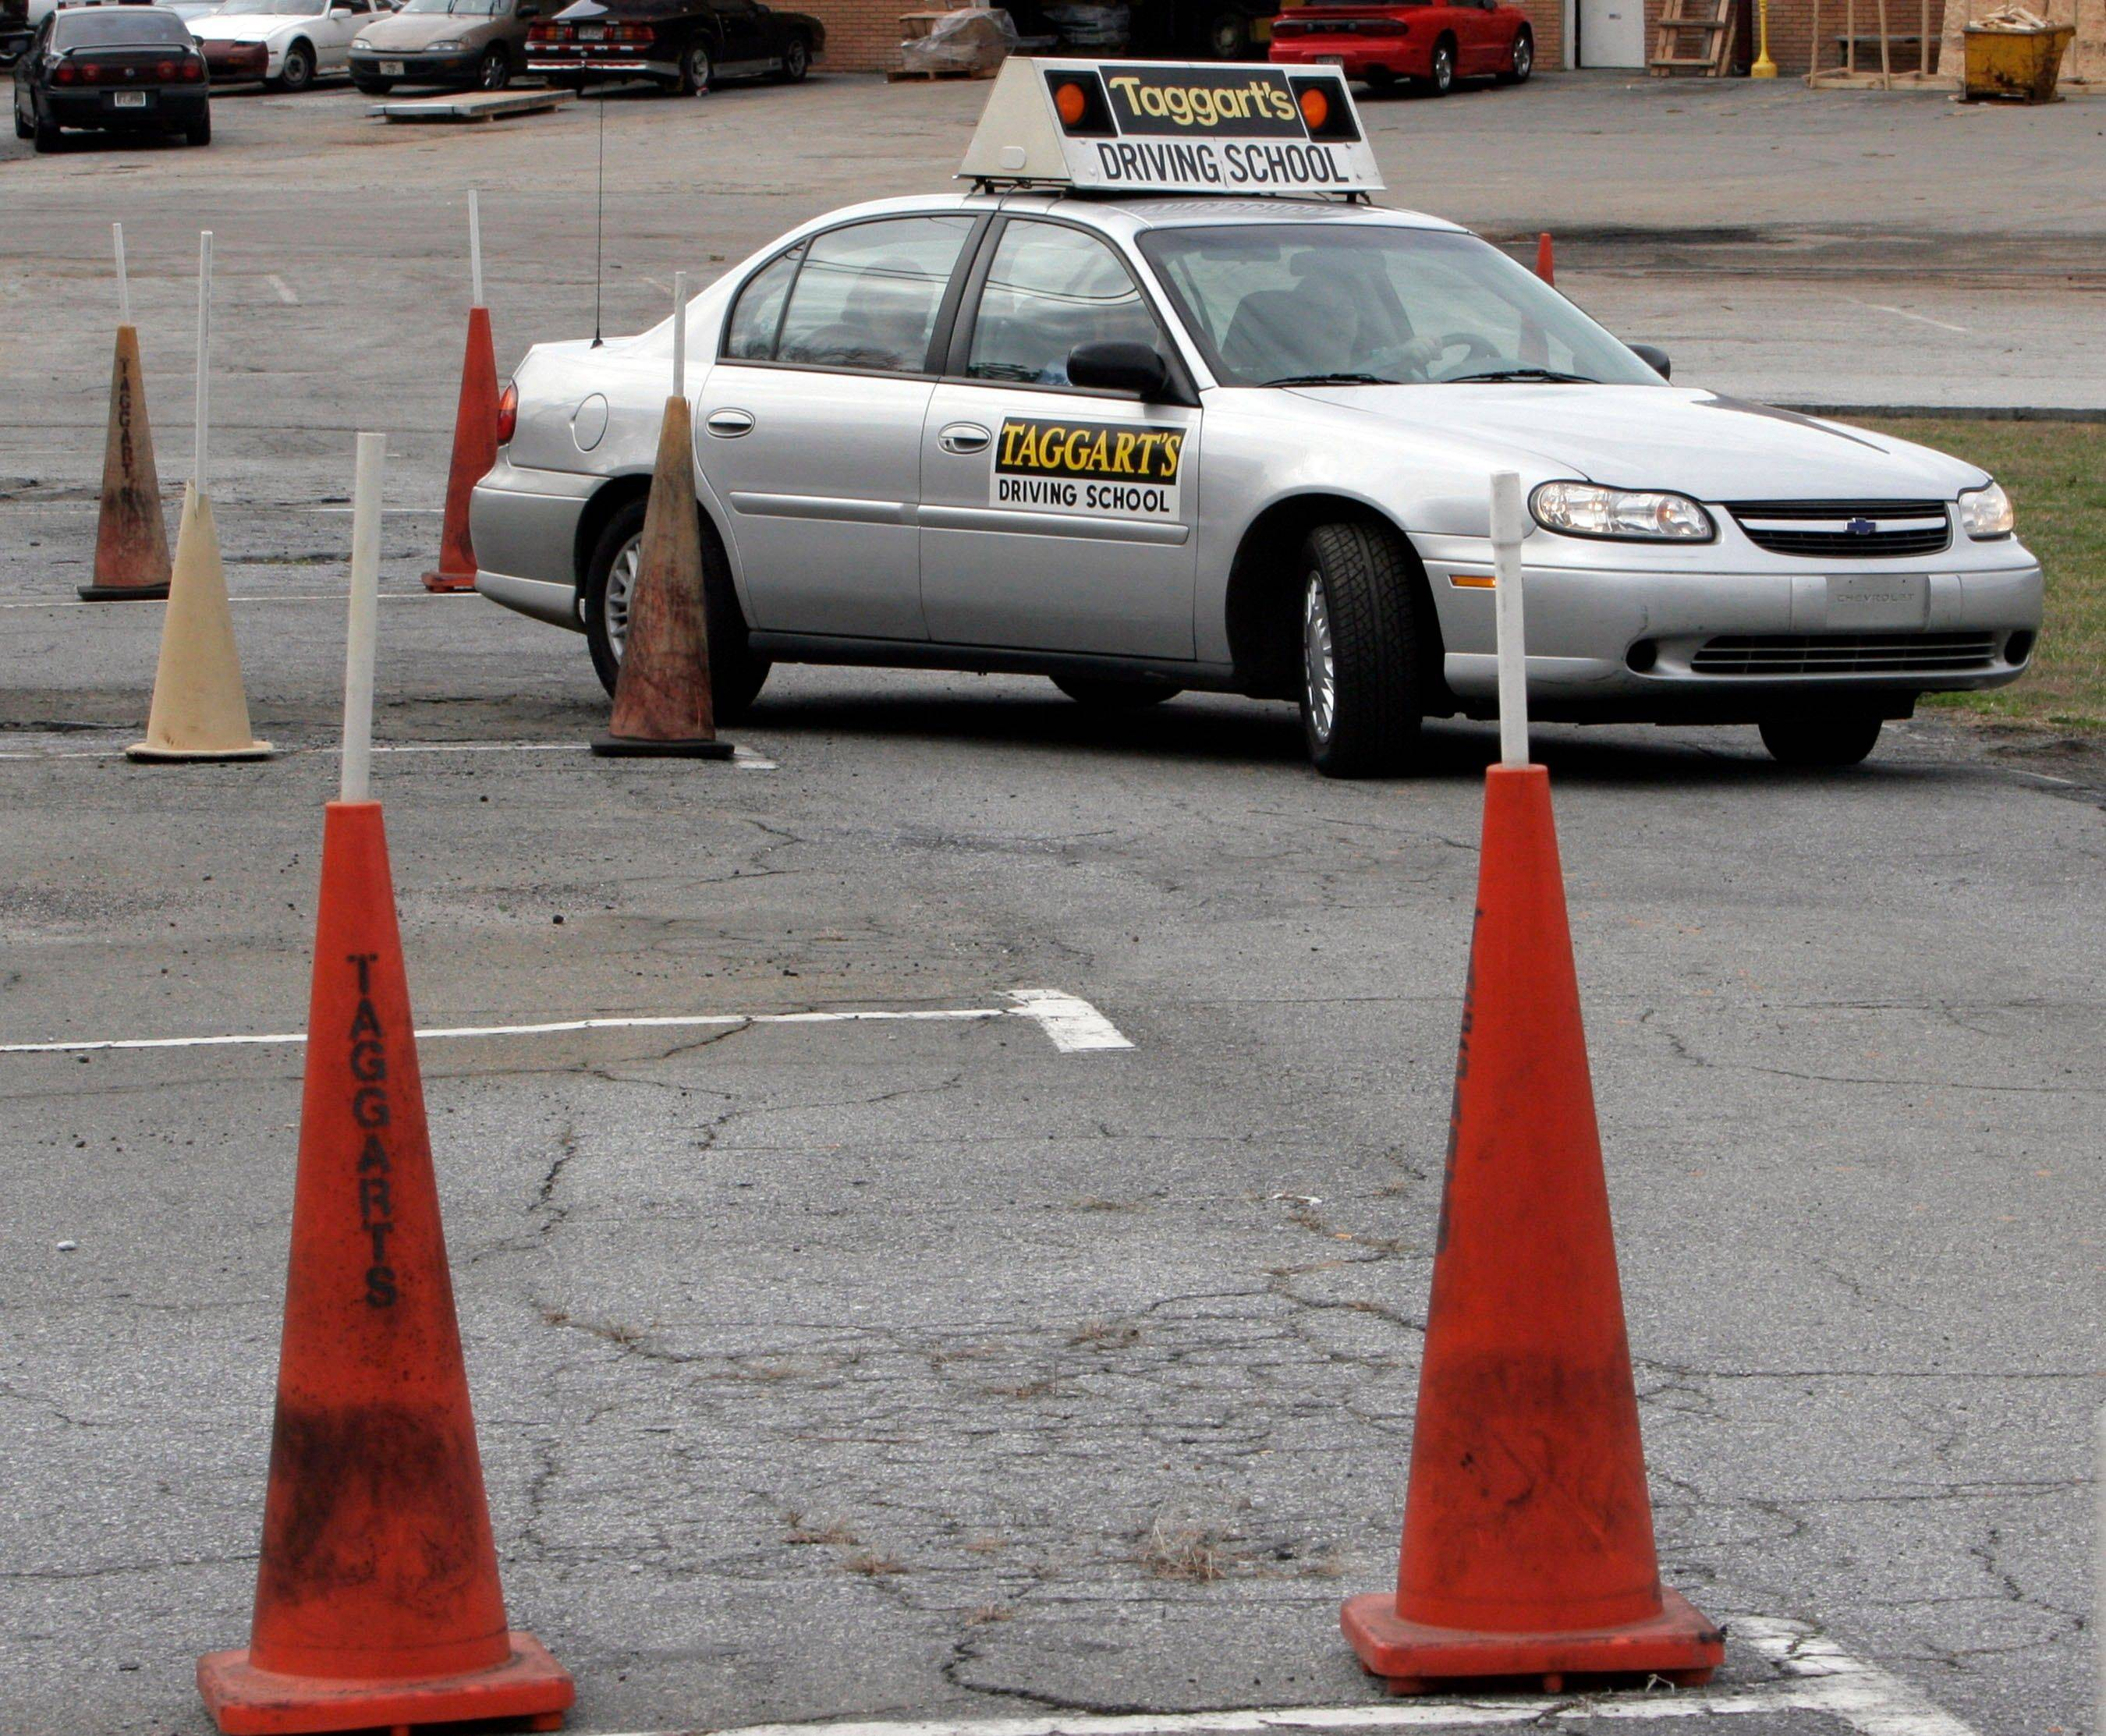 A student goes through parking cones at a driving school course in Tucker, Ga. Strong driver's license laws have led to fewer fatal crashes among 16-year-olds but with a disturbing side effect — more fatal accidents among 18-year-olds, a nationwide study found.